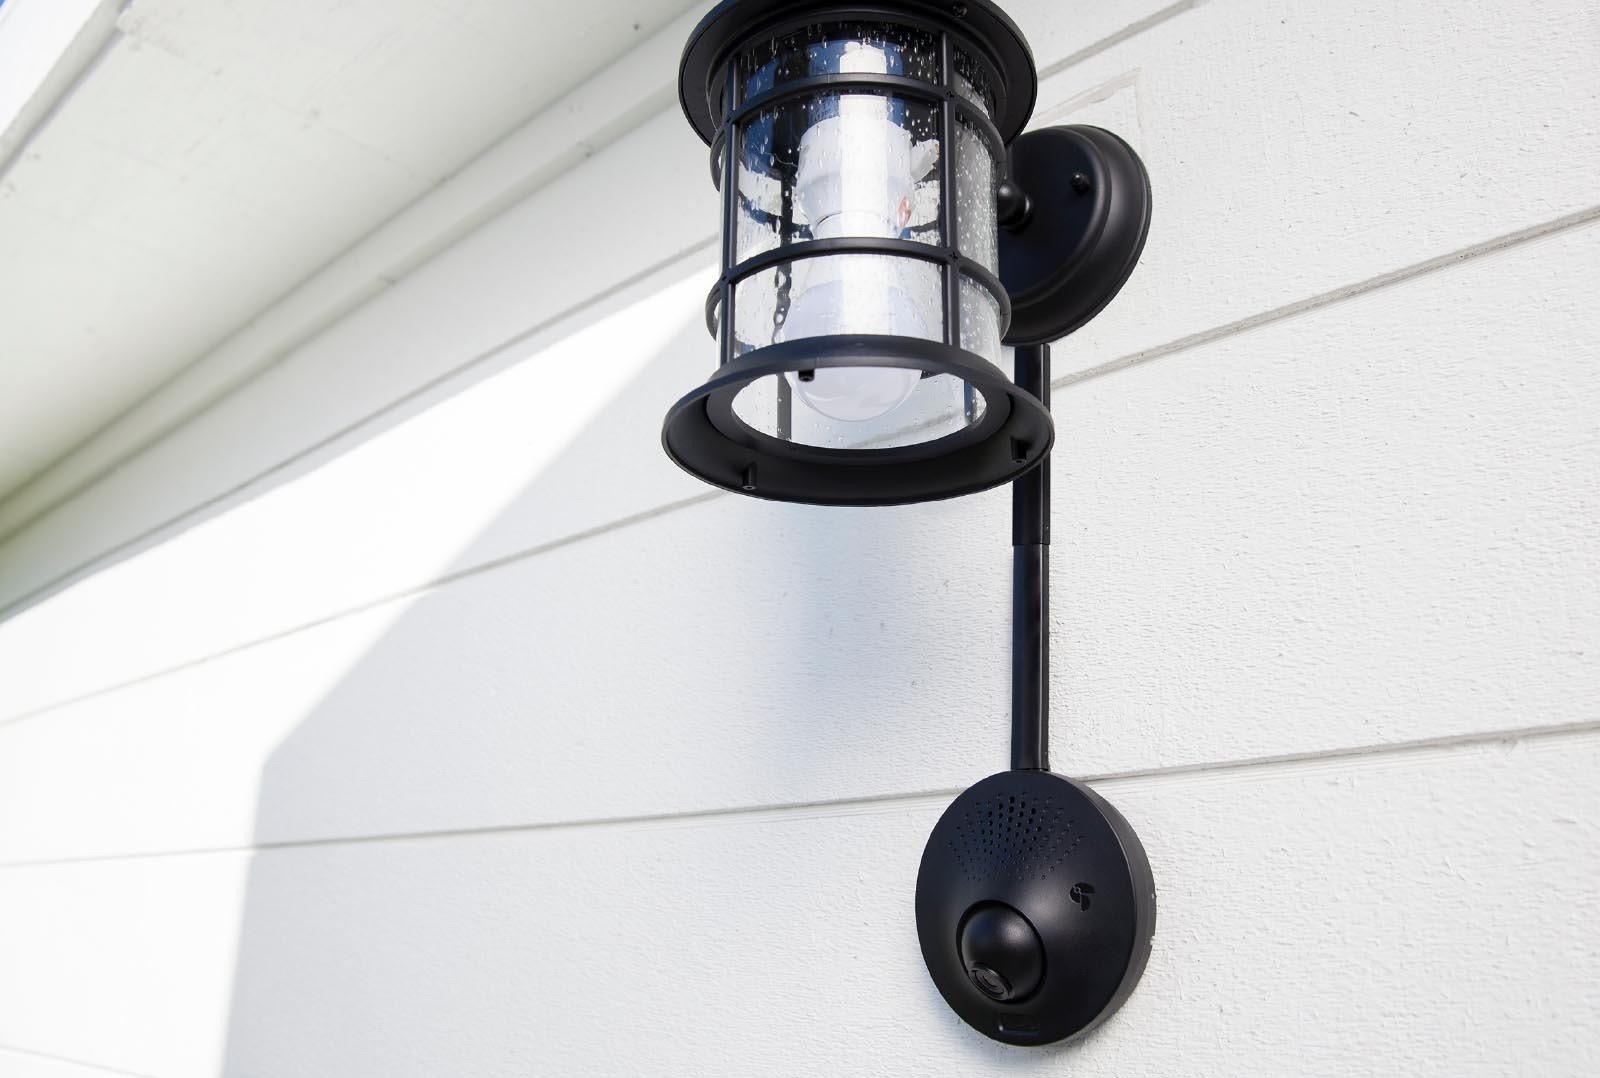 Photo 7 of 9 in 5 of the Best-Looking Home Security Systems Out There